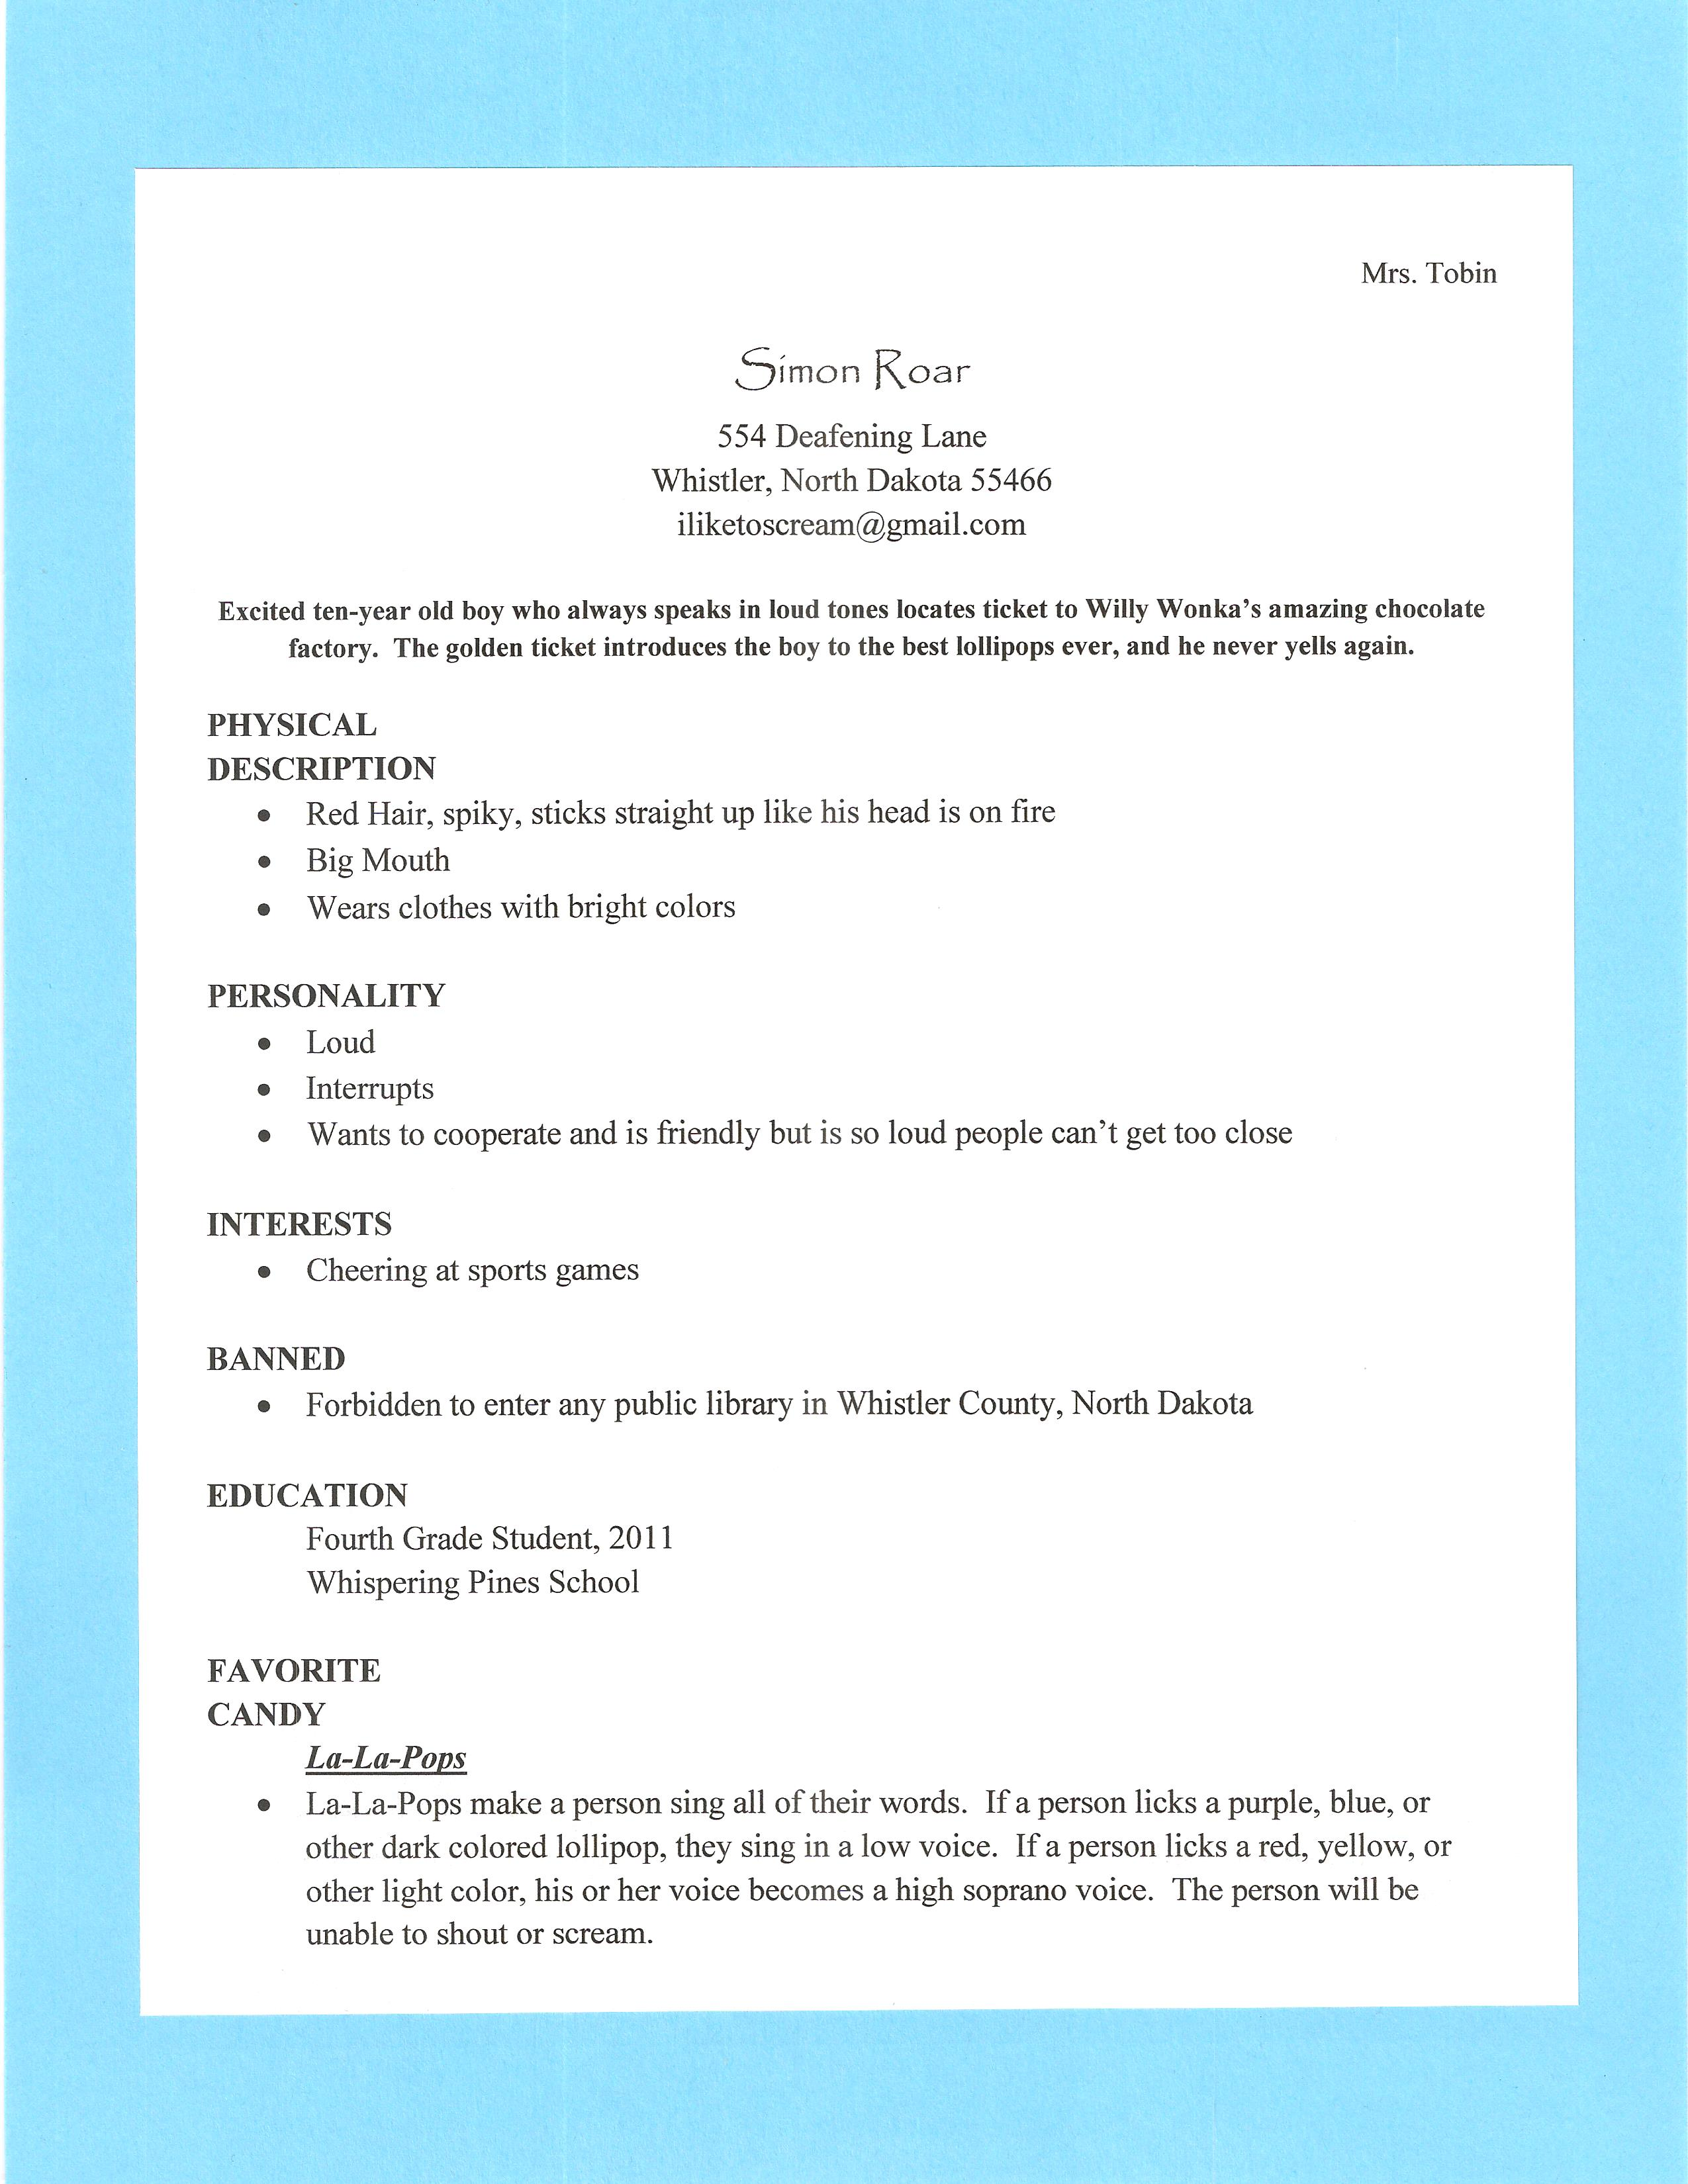 elementary teacher resume examples sample refference cv resumes elementary teacher resume examples 2013 dancer resume samples visualcv resume samples database all things upper elementary